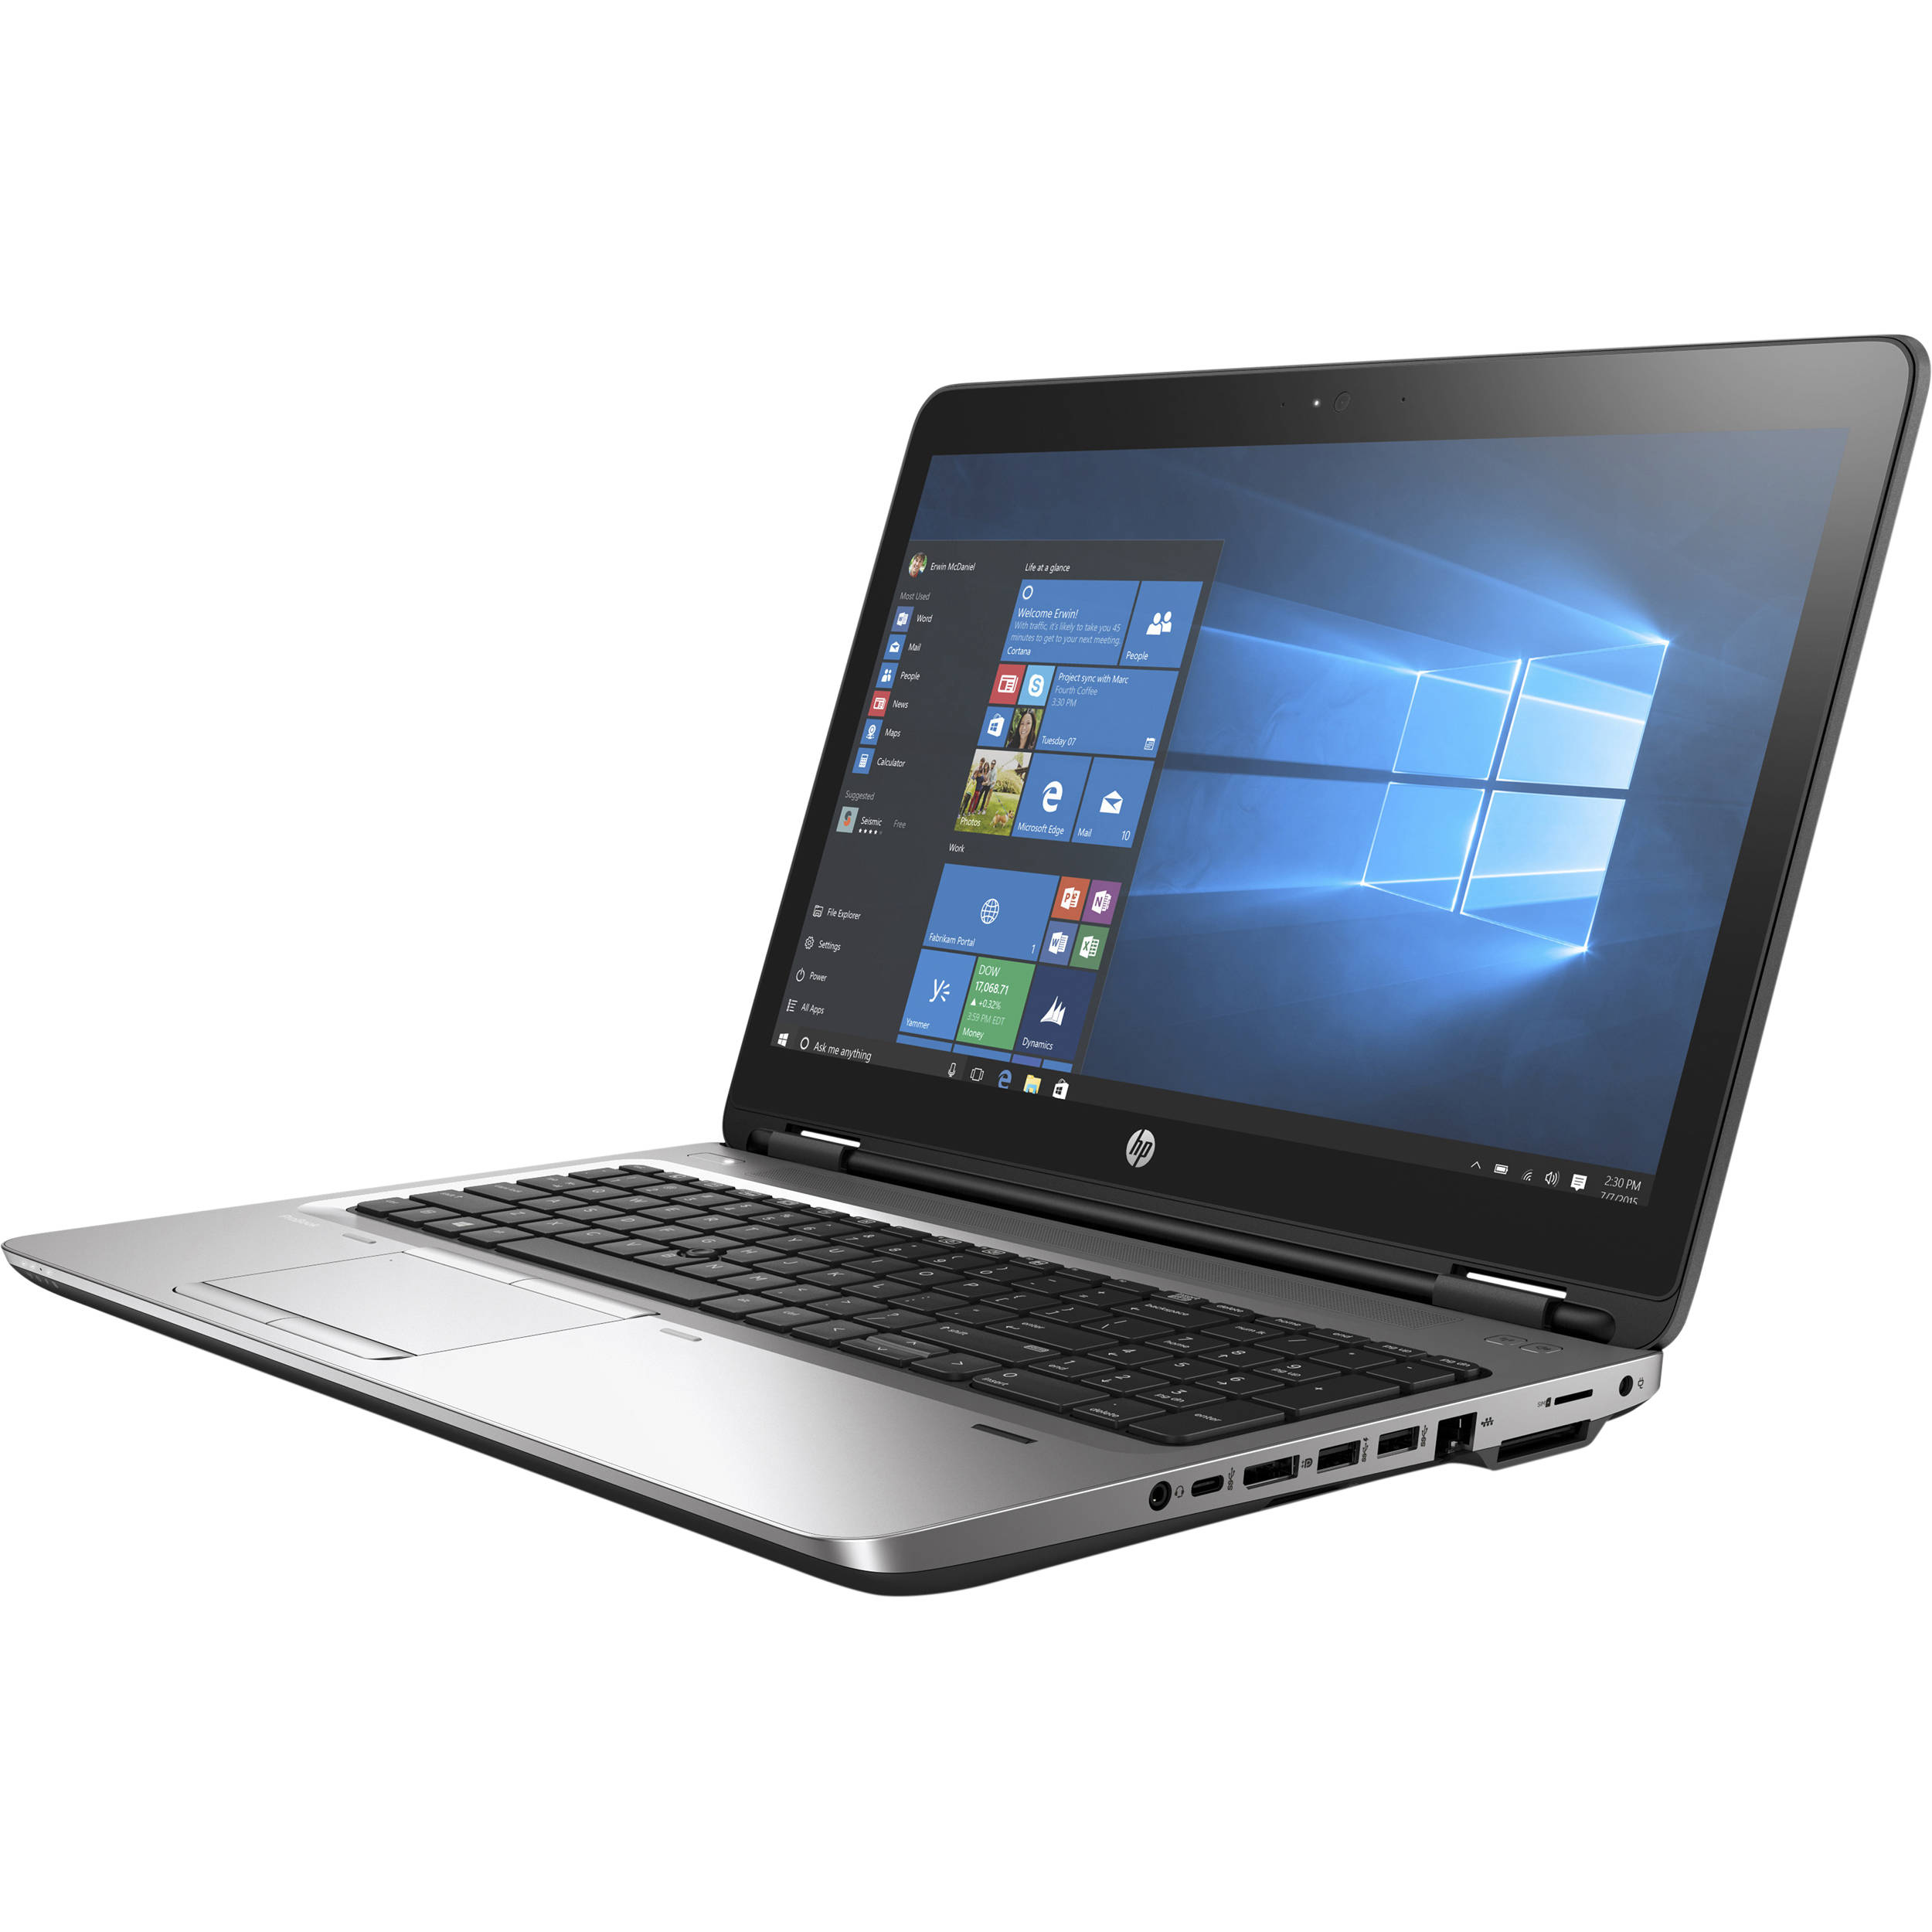 NEW DRIVERS: HP PROBOOK 655 G2 UNIVERSAL CAMERA